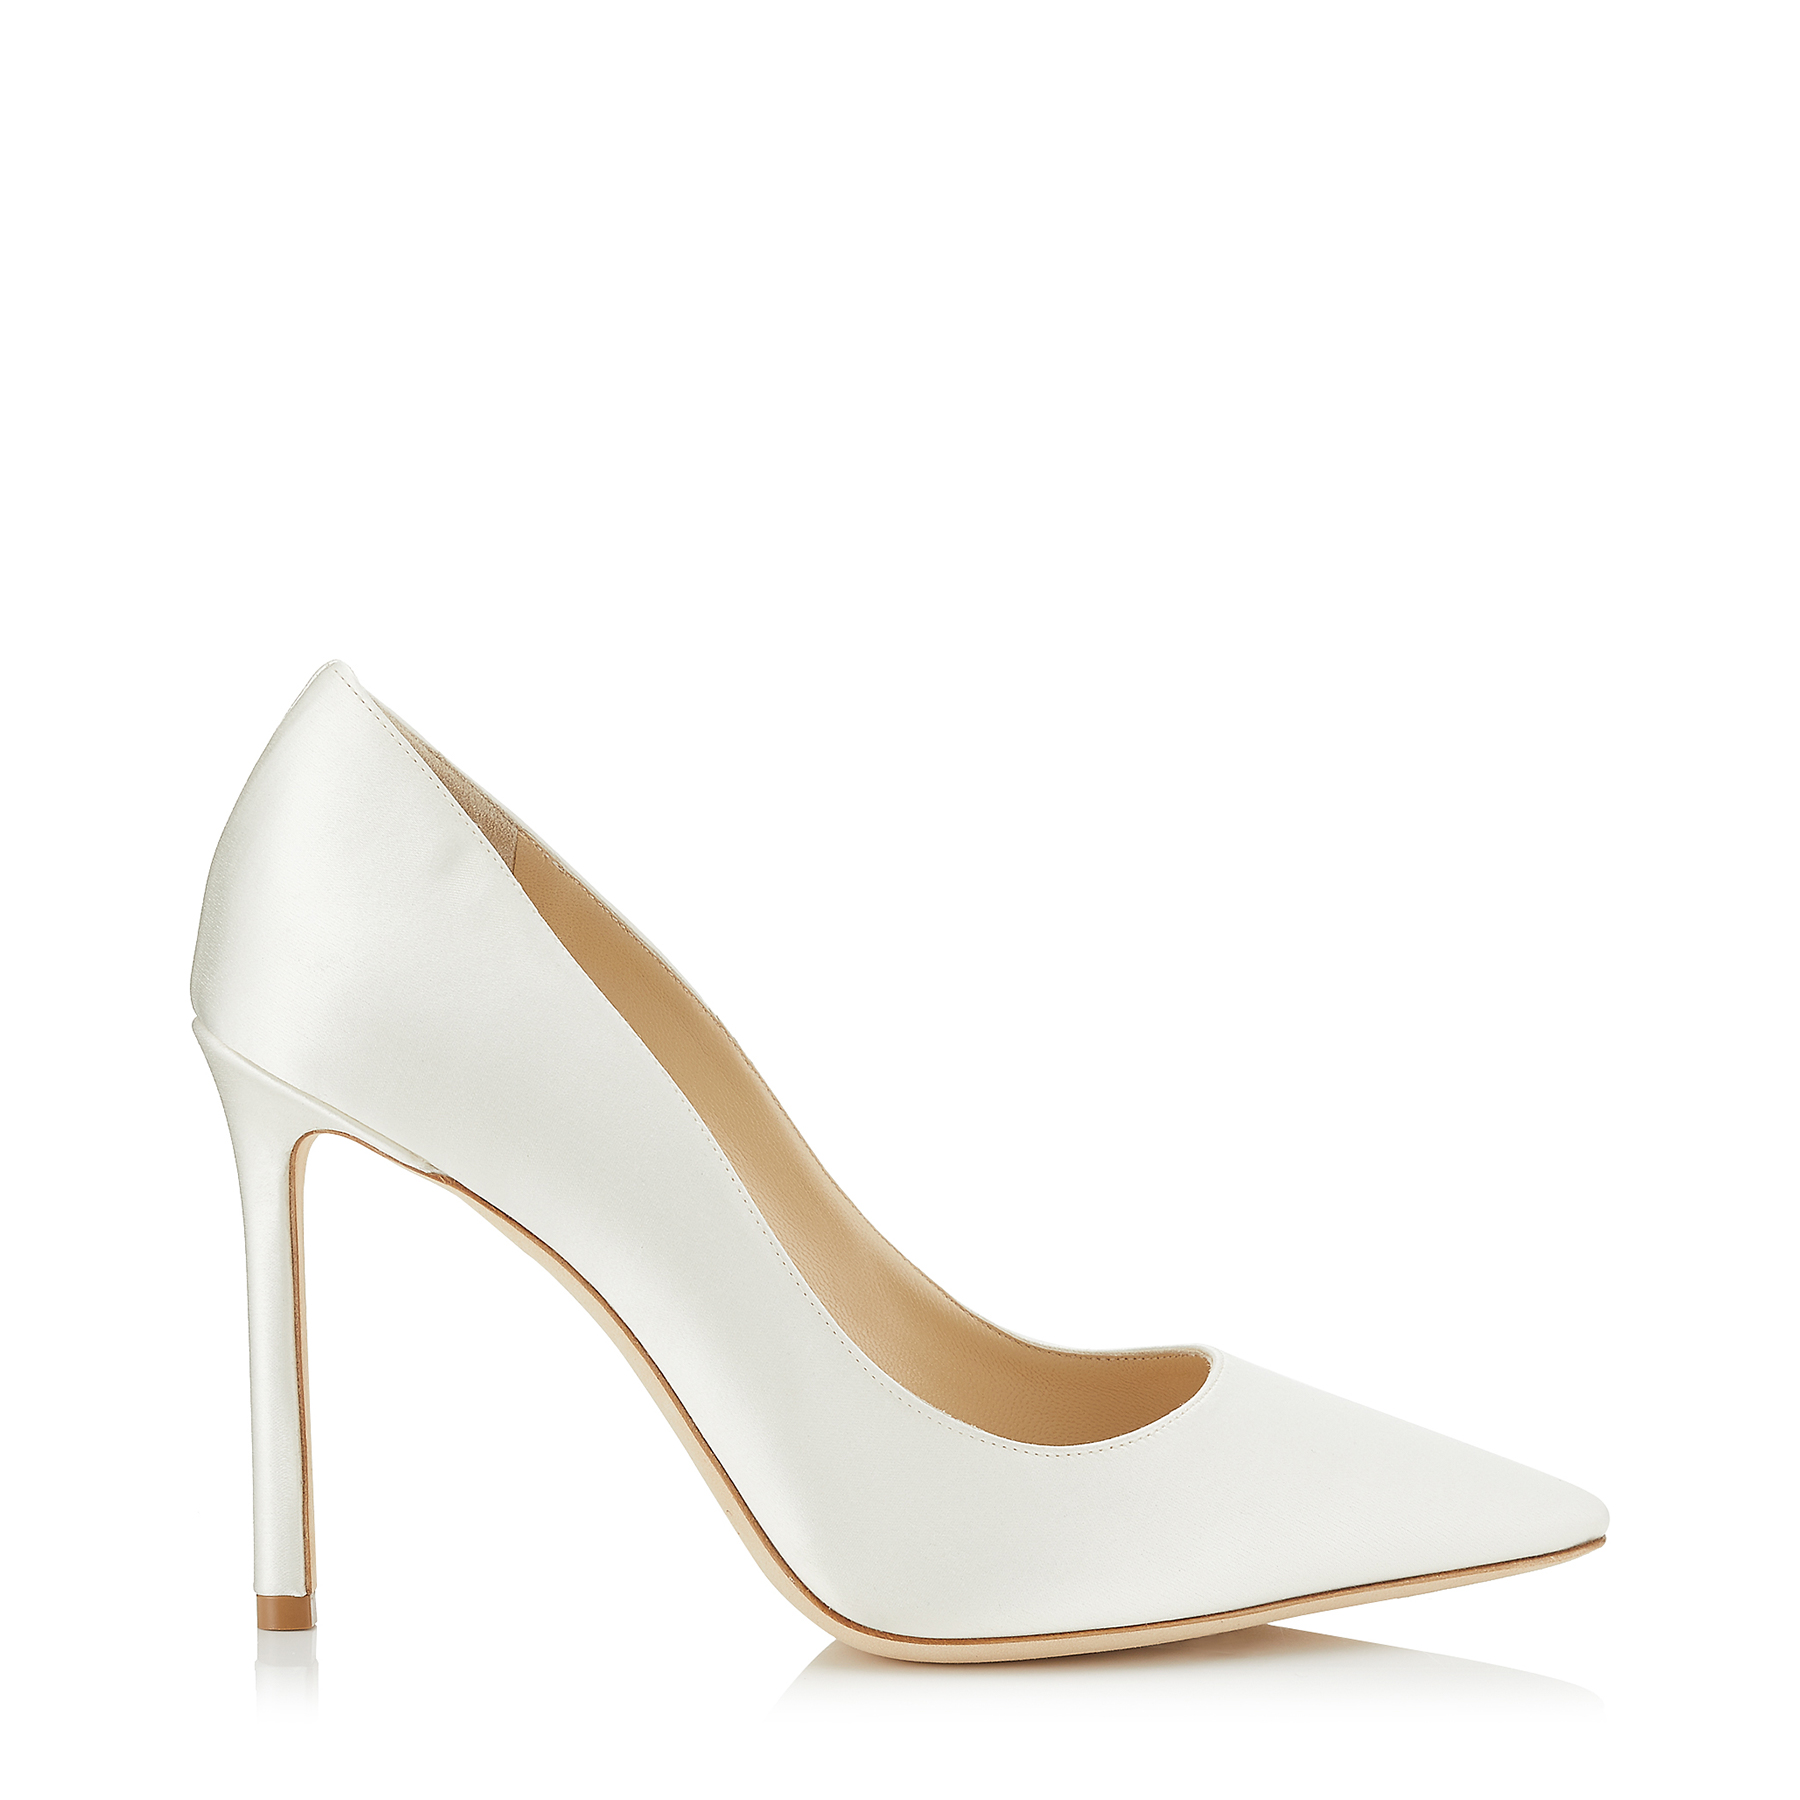 ROMY 100 Ivory Satin Pointy Toe Pumps by Jimmy Choo